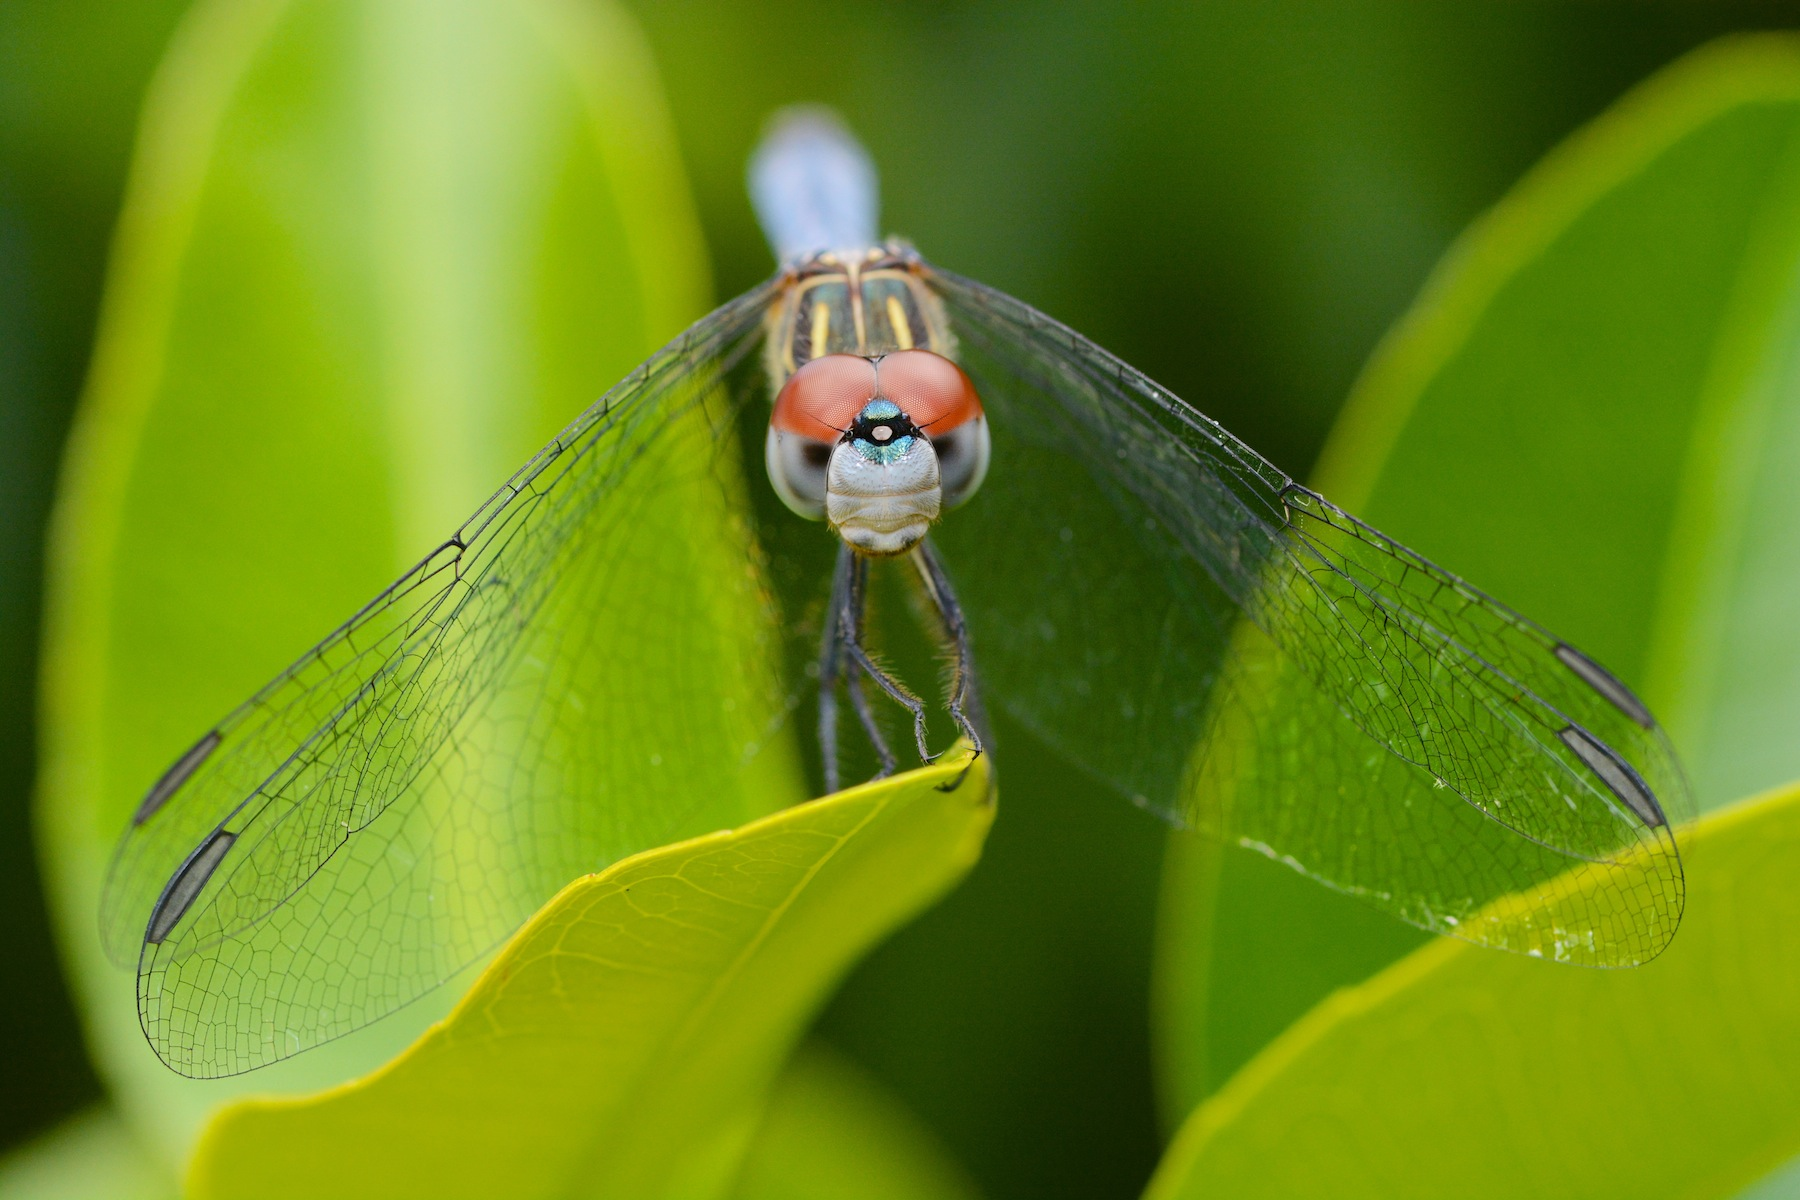 dragonflies eye diagram remote car starter wiring diagrams dragonfly eyes related keywords long tail